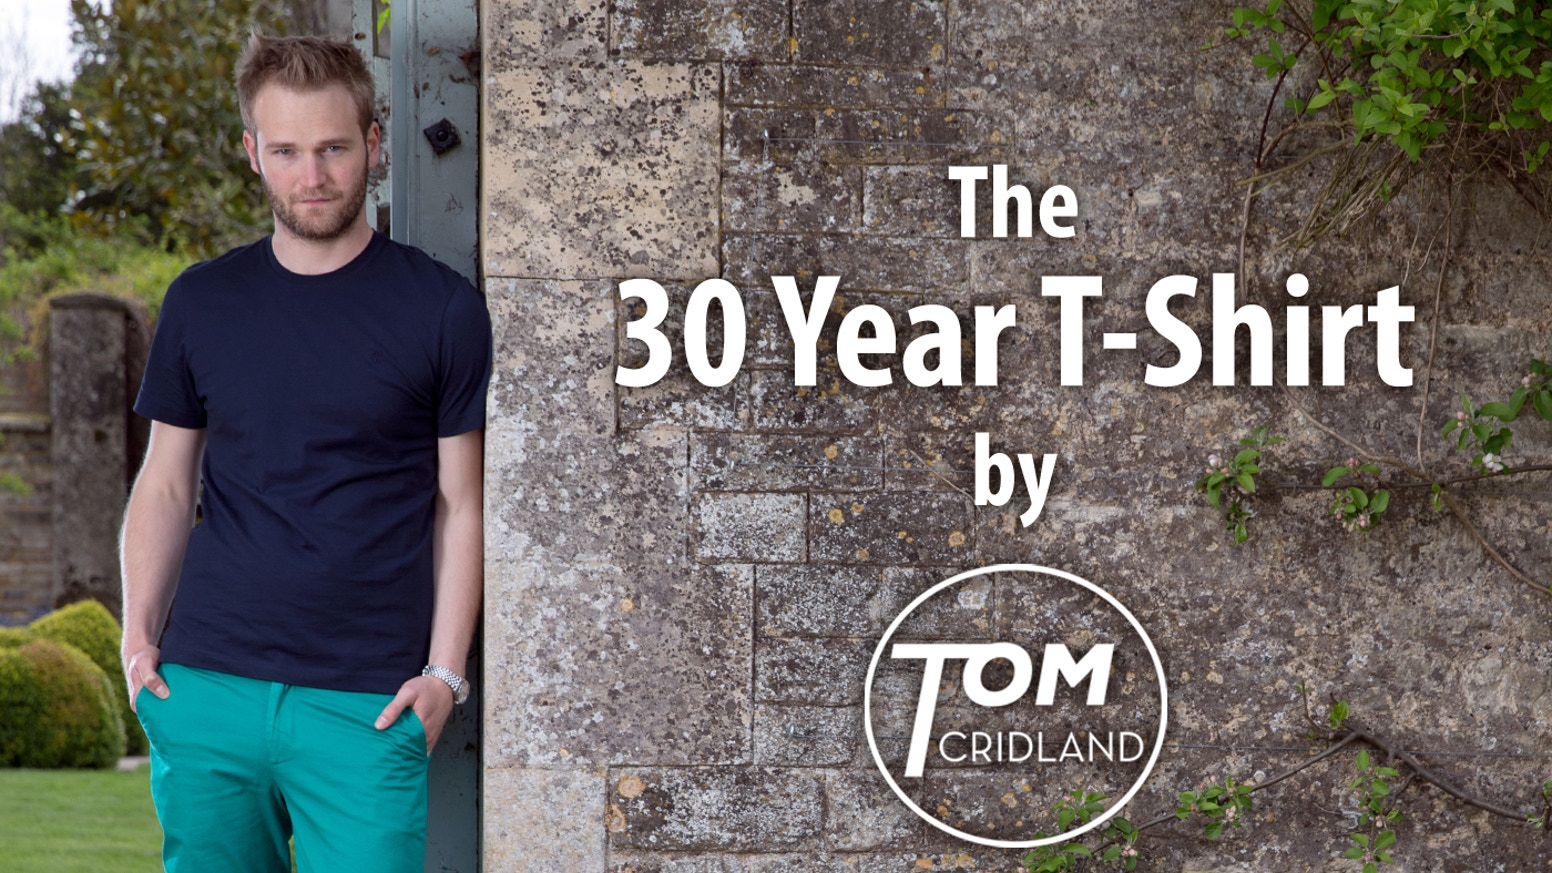 HELP US MAKE THE PERFECT T-SHIRT: Handmade to last a lifetime and Guaranteed for Three Decades.